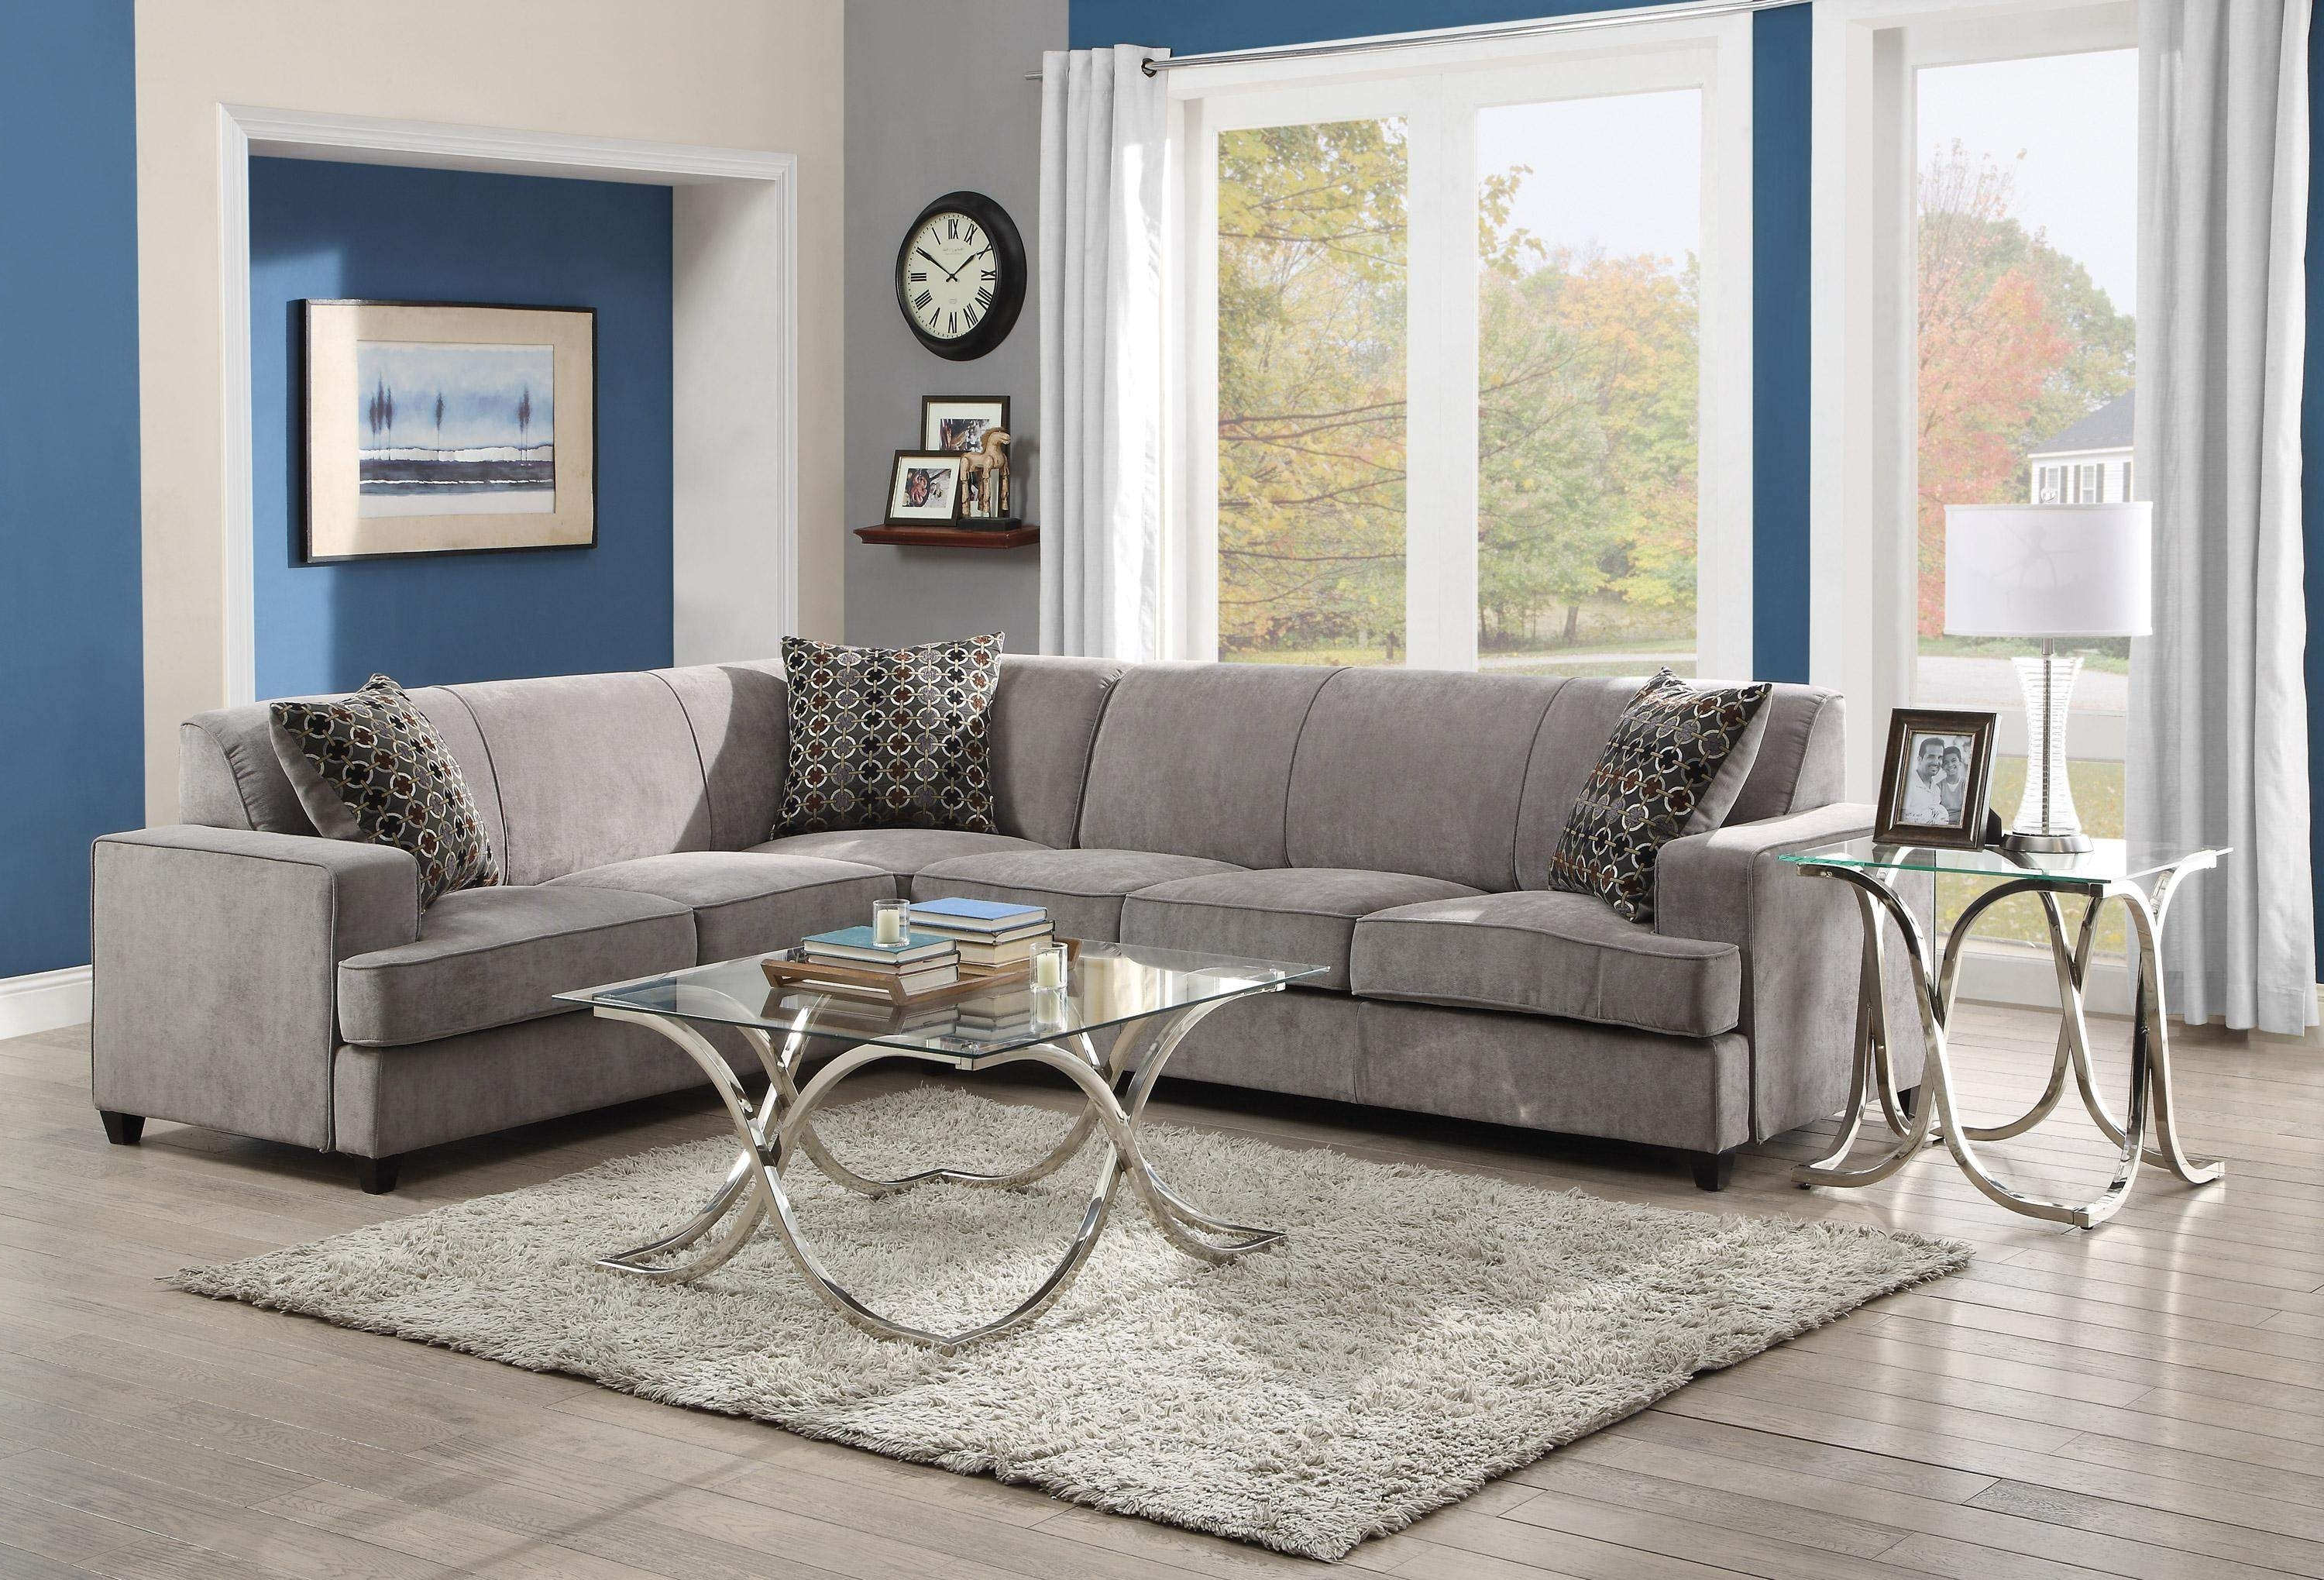 Trendy Tess Casual Grey Fabric Sectional Sofa For Corners With Queen Size With Regard To Philadelphia Sectional Sofas (View 18 of 20)